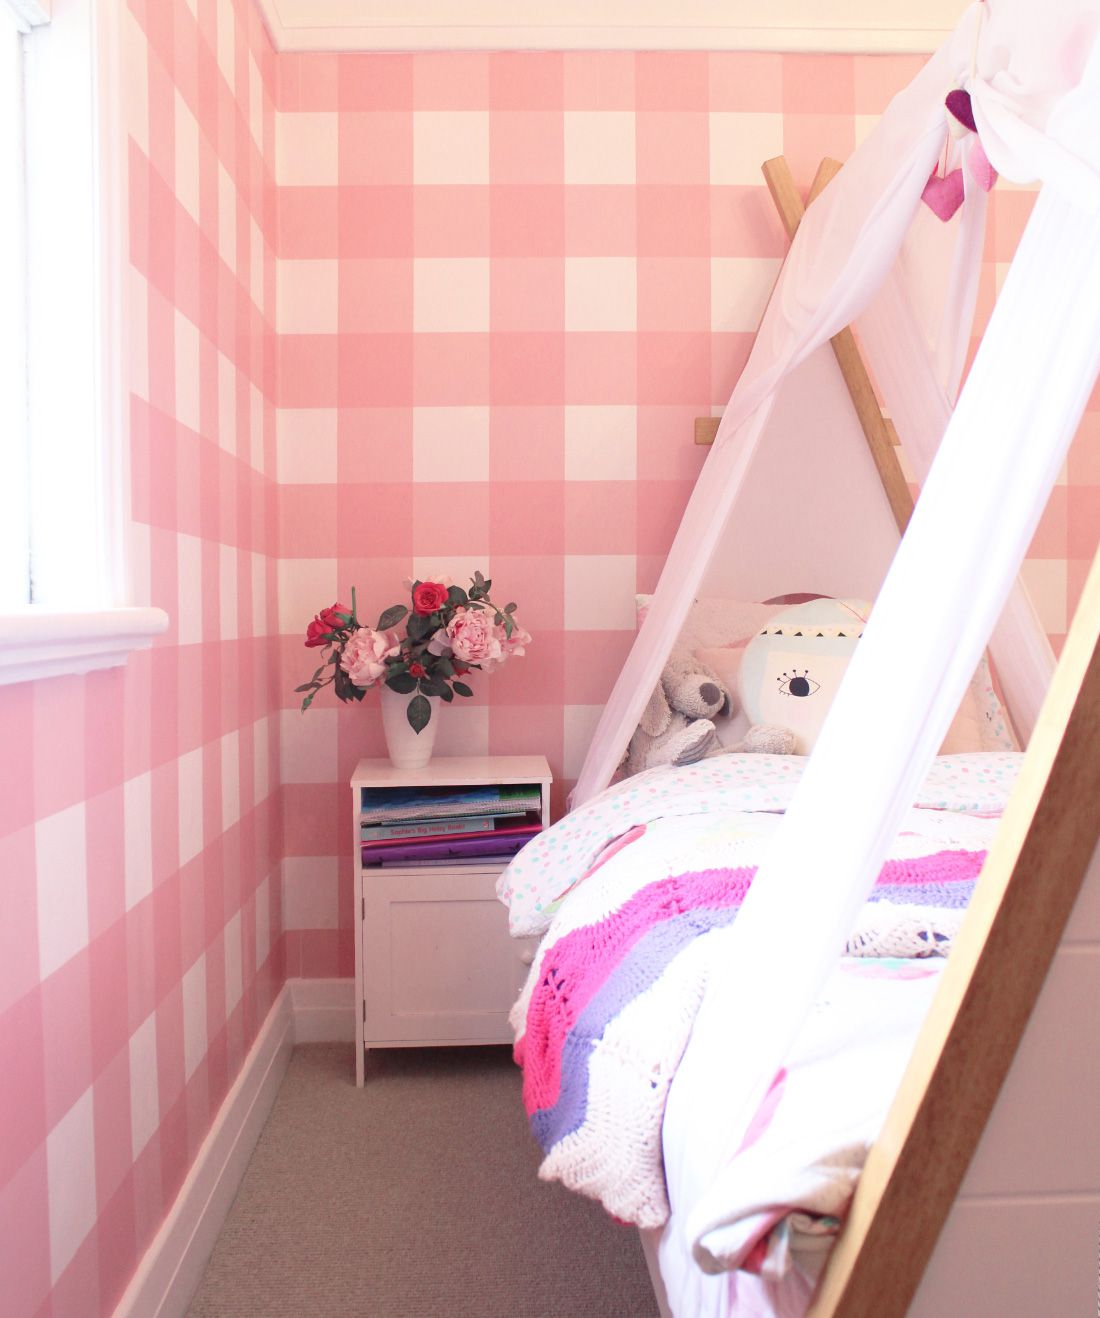 Buffalo Check Wallpaper • Little Kids Bedroom • Pink Plaid Wallpaper